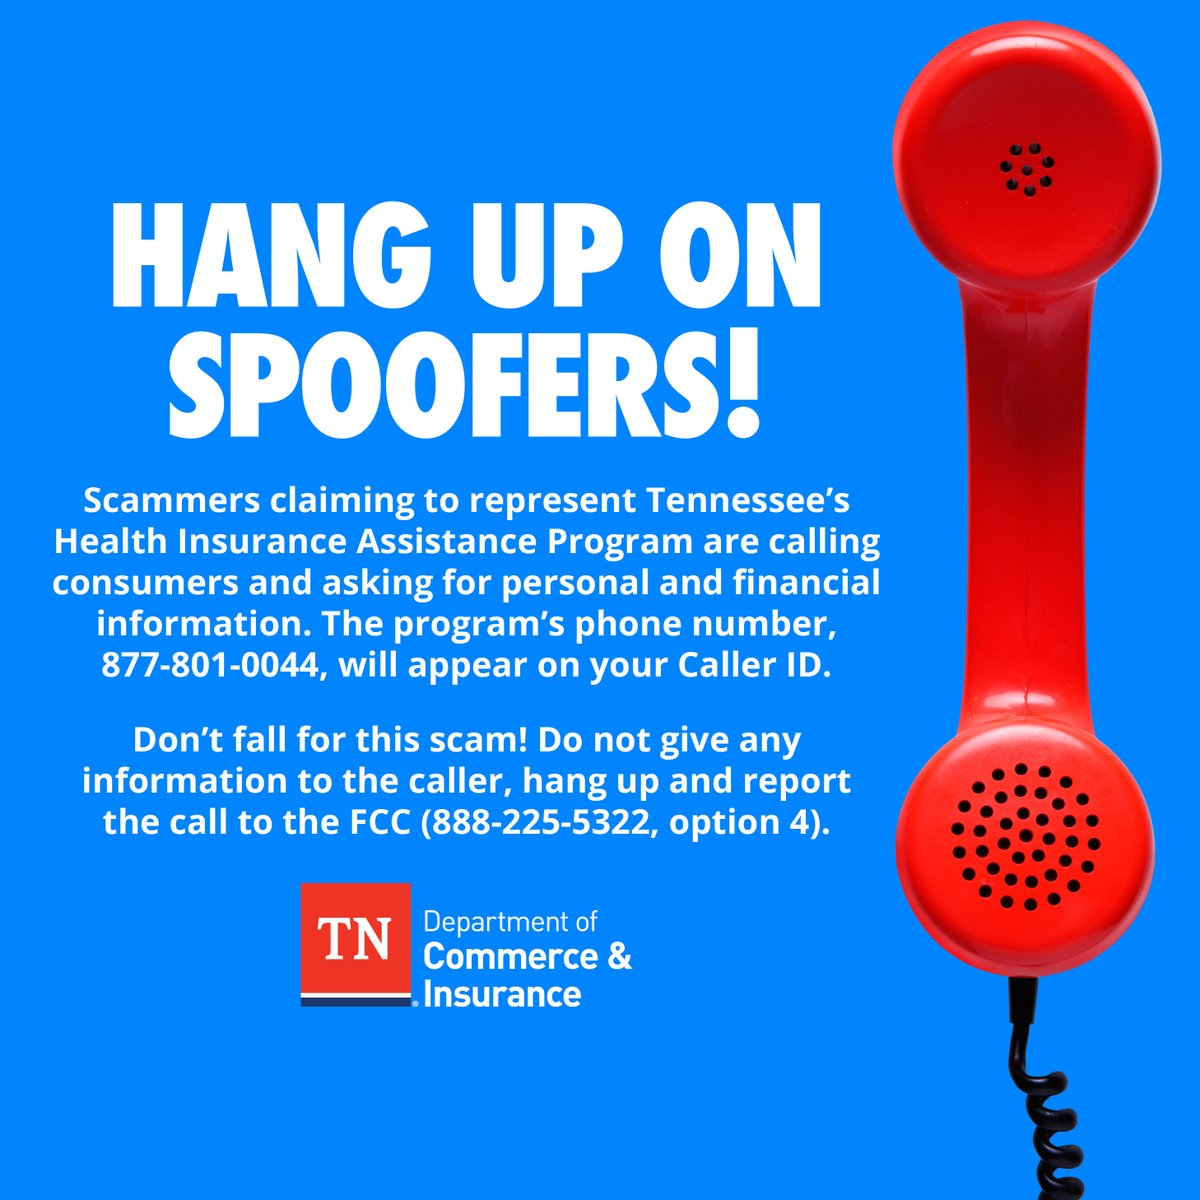 CONSUMER ALERT! Scammers claiming to represent the state Health Insurance Assistance Program are calling consumers and asking for personal/financial info. Don't fall for the scam! Hang up and report the scam to the @FCC online or call at 888-225-5322, option 4. #fightfraud https://t.co/59GDwYvLmy